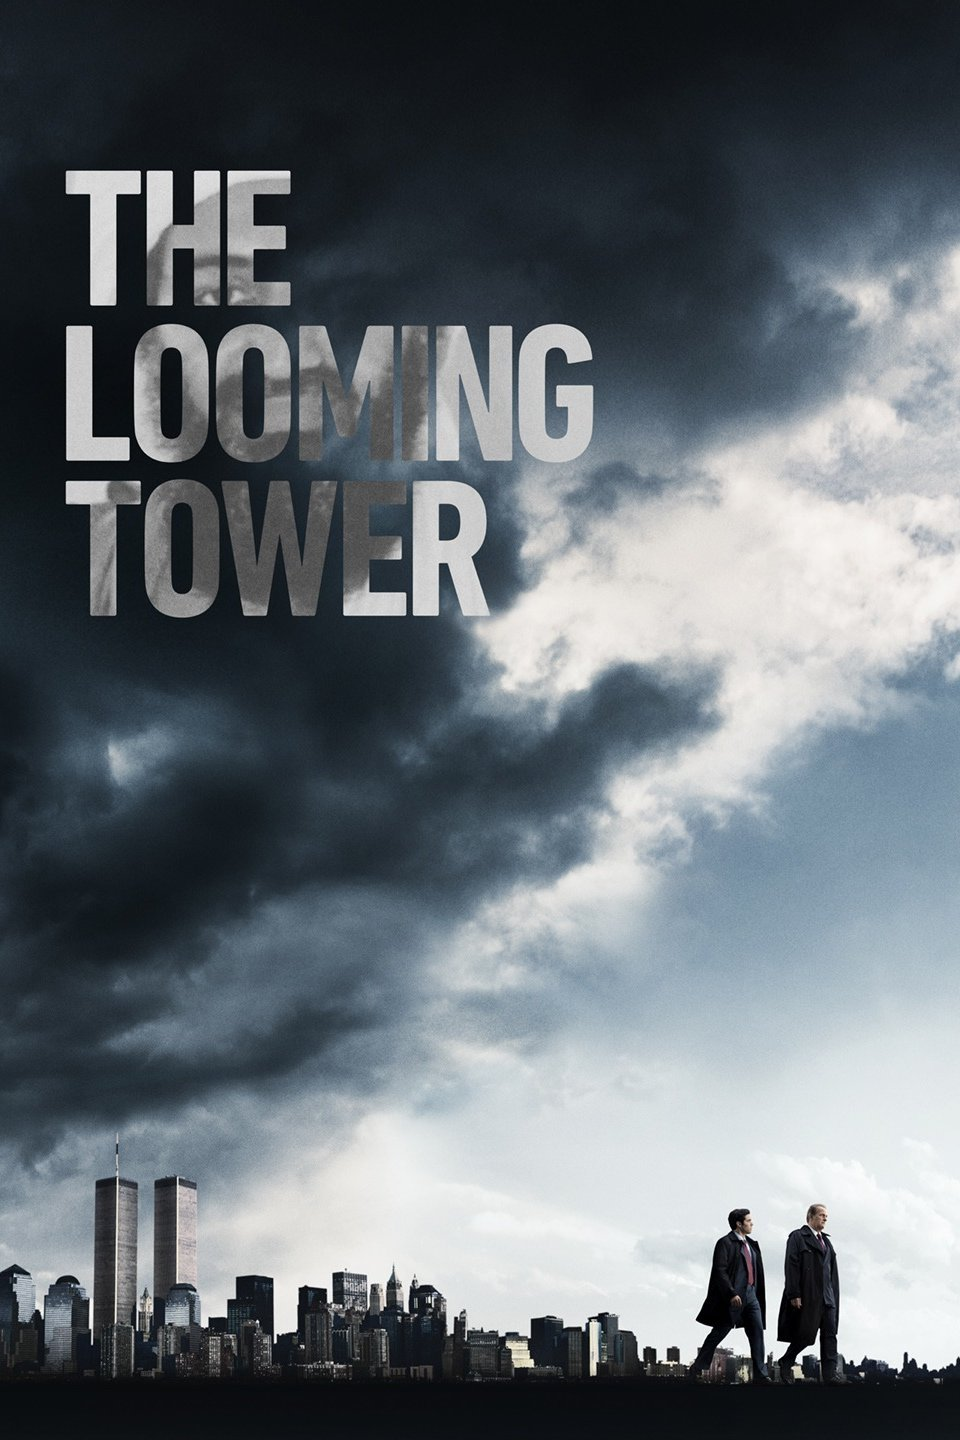 The Looming Tower Season 1 Episode 5 Download WEBRip 480p 720p